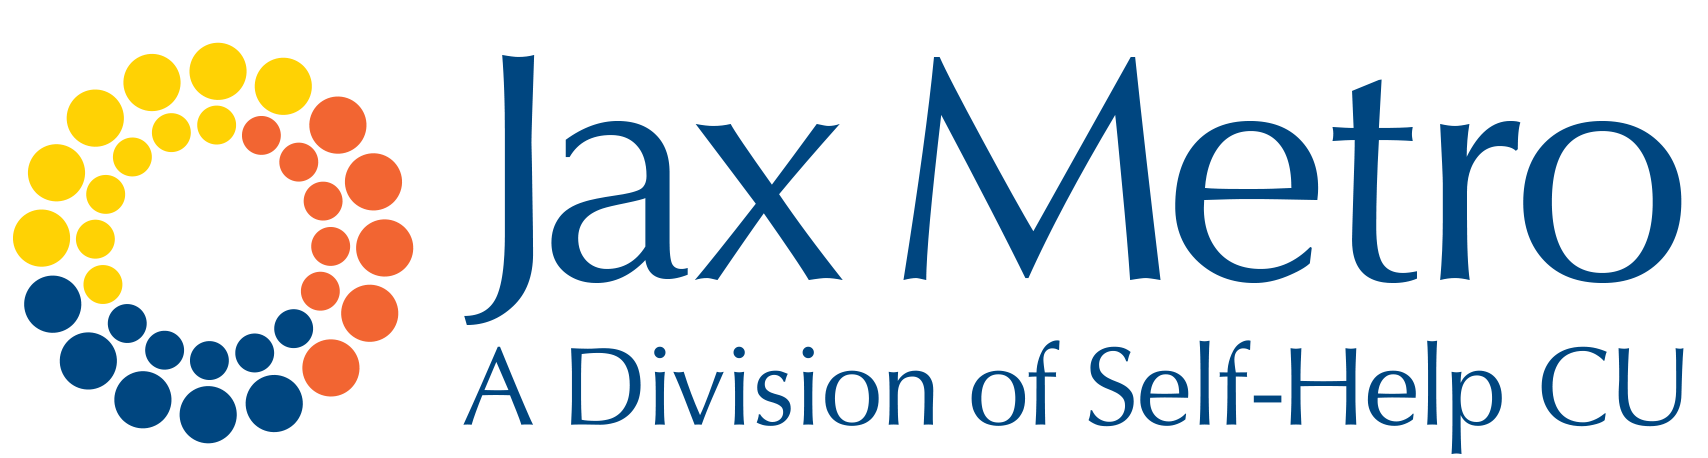 Jax Metro is a division of Self-Help Credit Union serving the Jacksonville, Florida area.